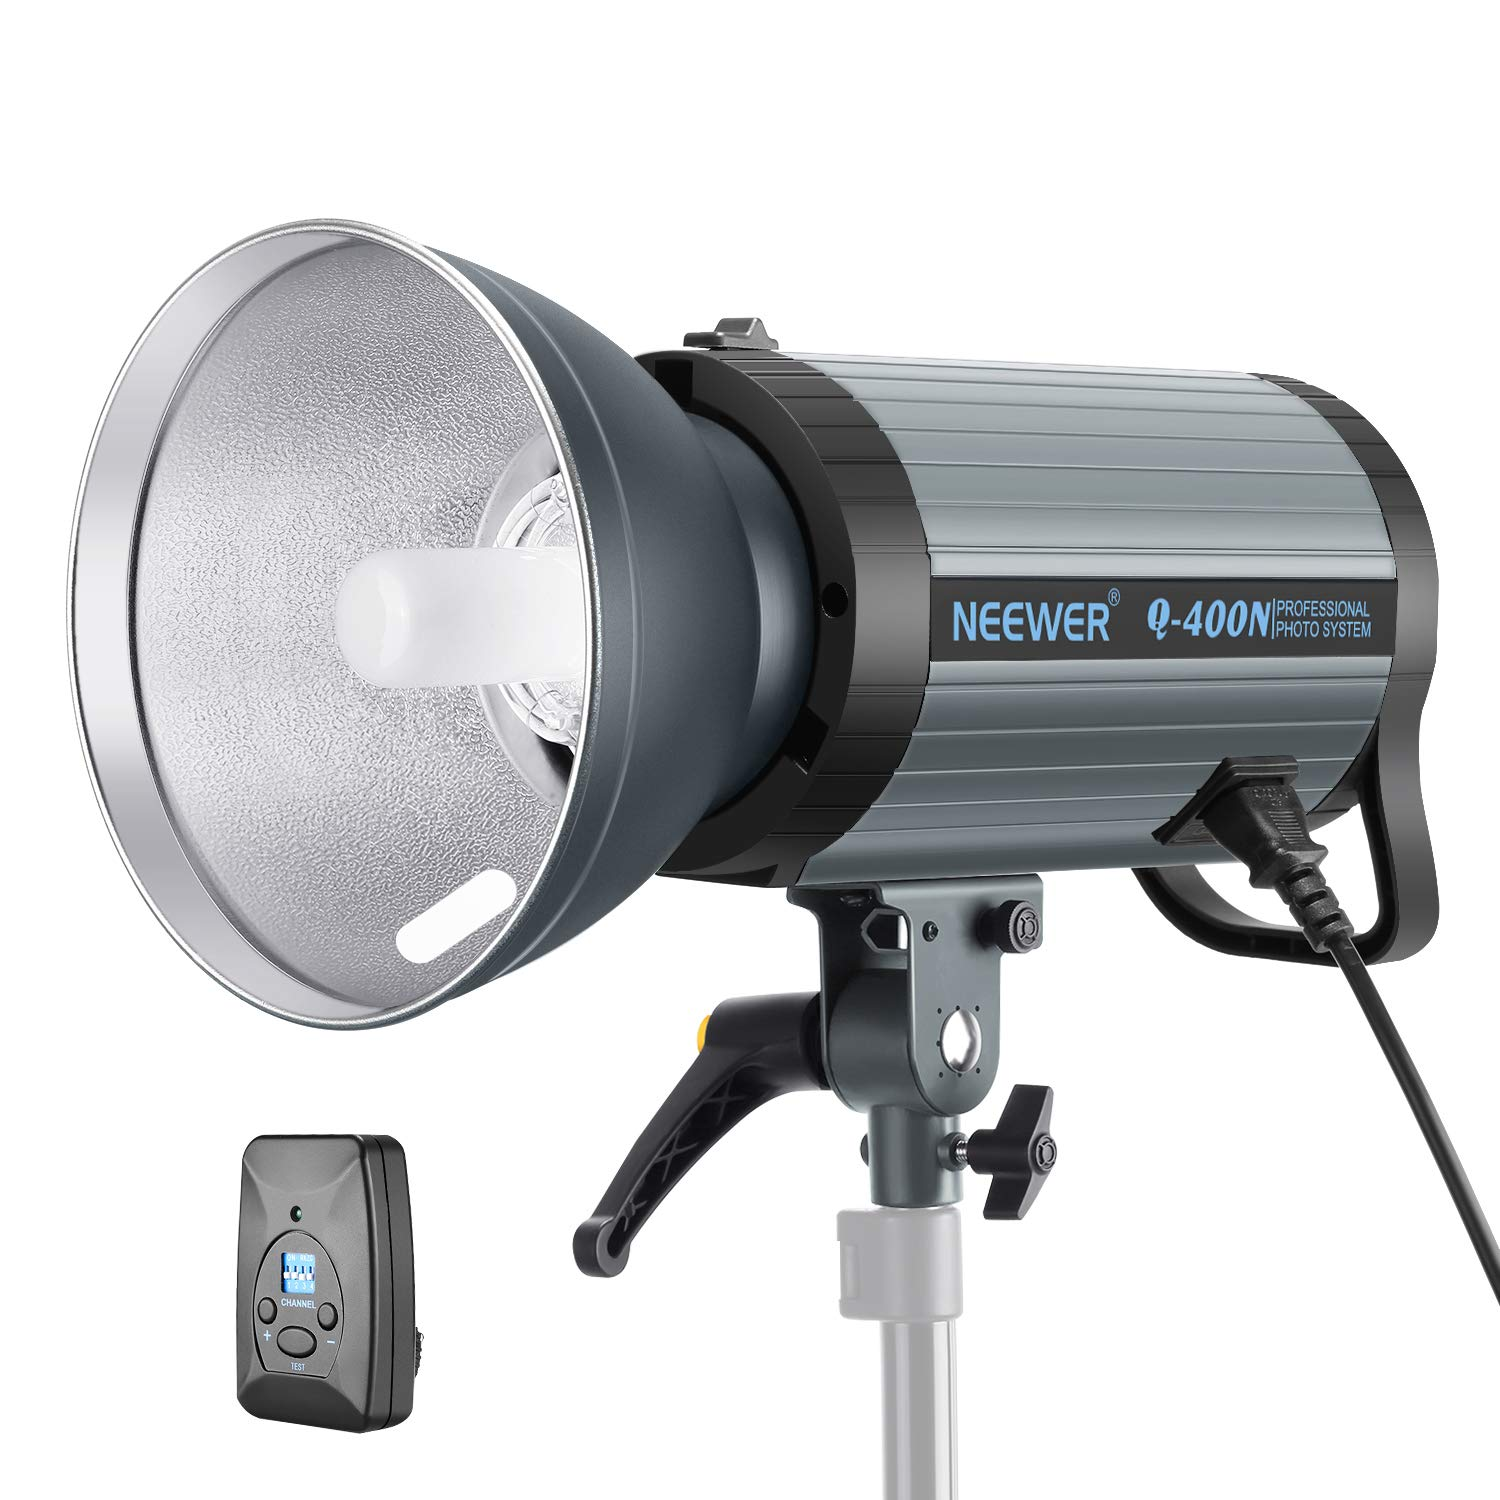 Neewer 400W GN65 Studio Flash Strobe Light Monolight with 2.4G Wireless Trigger and Modeling Lamp, Recycle in 0.01-0.5 Sec, Bowens Mount for Indoor Studio Portrait Photography(Q400N) by Neewer